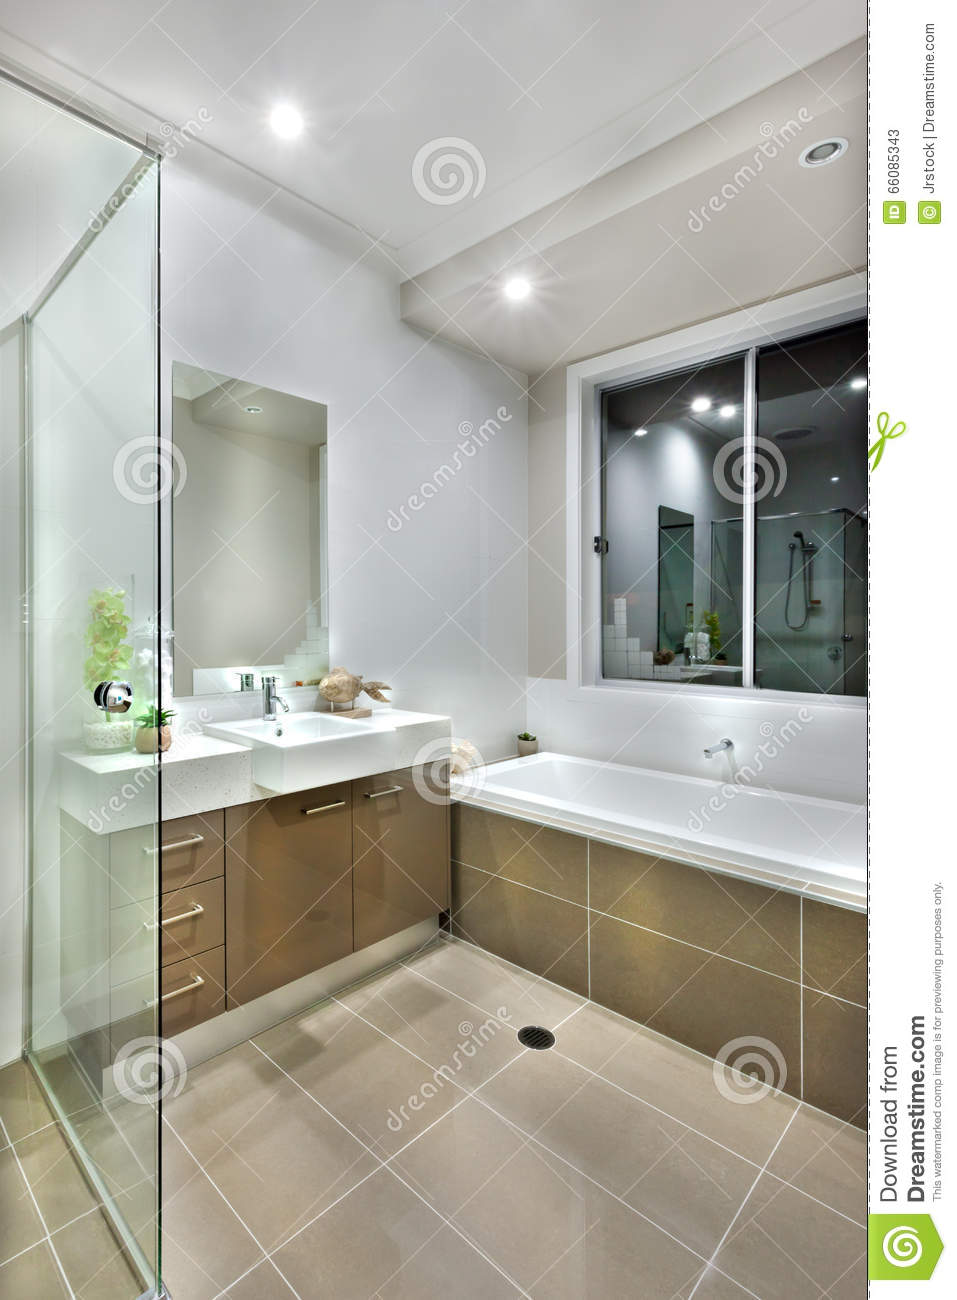 Brilliant Bathroom Design Small Bathroom Shower Doors Subway Tile Bathroom